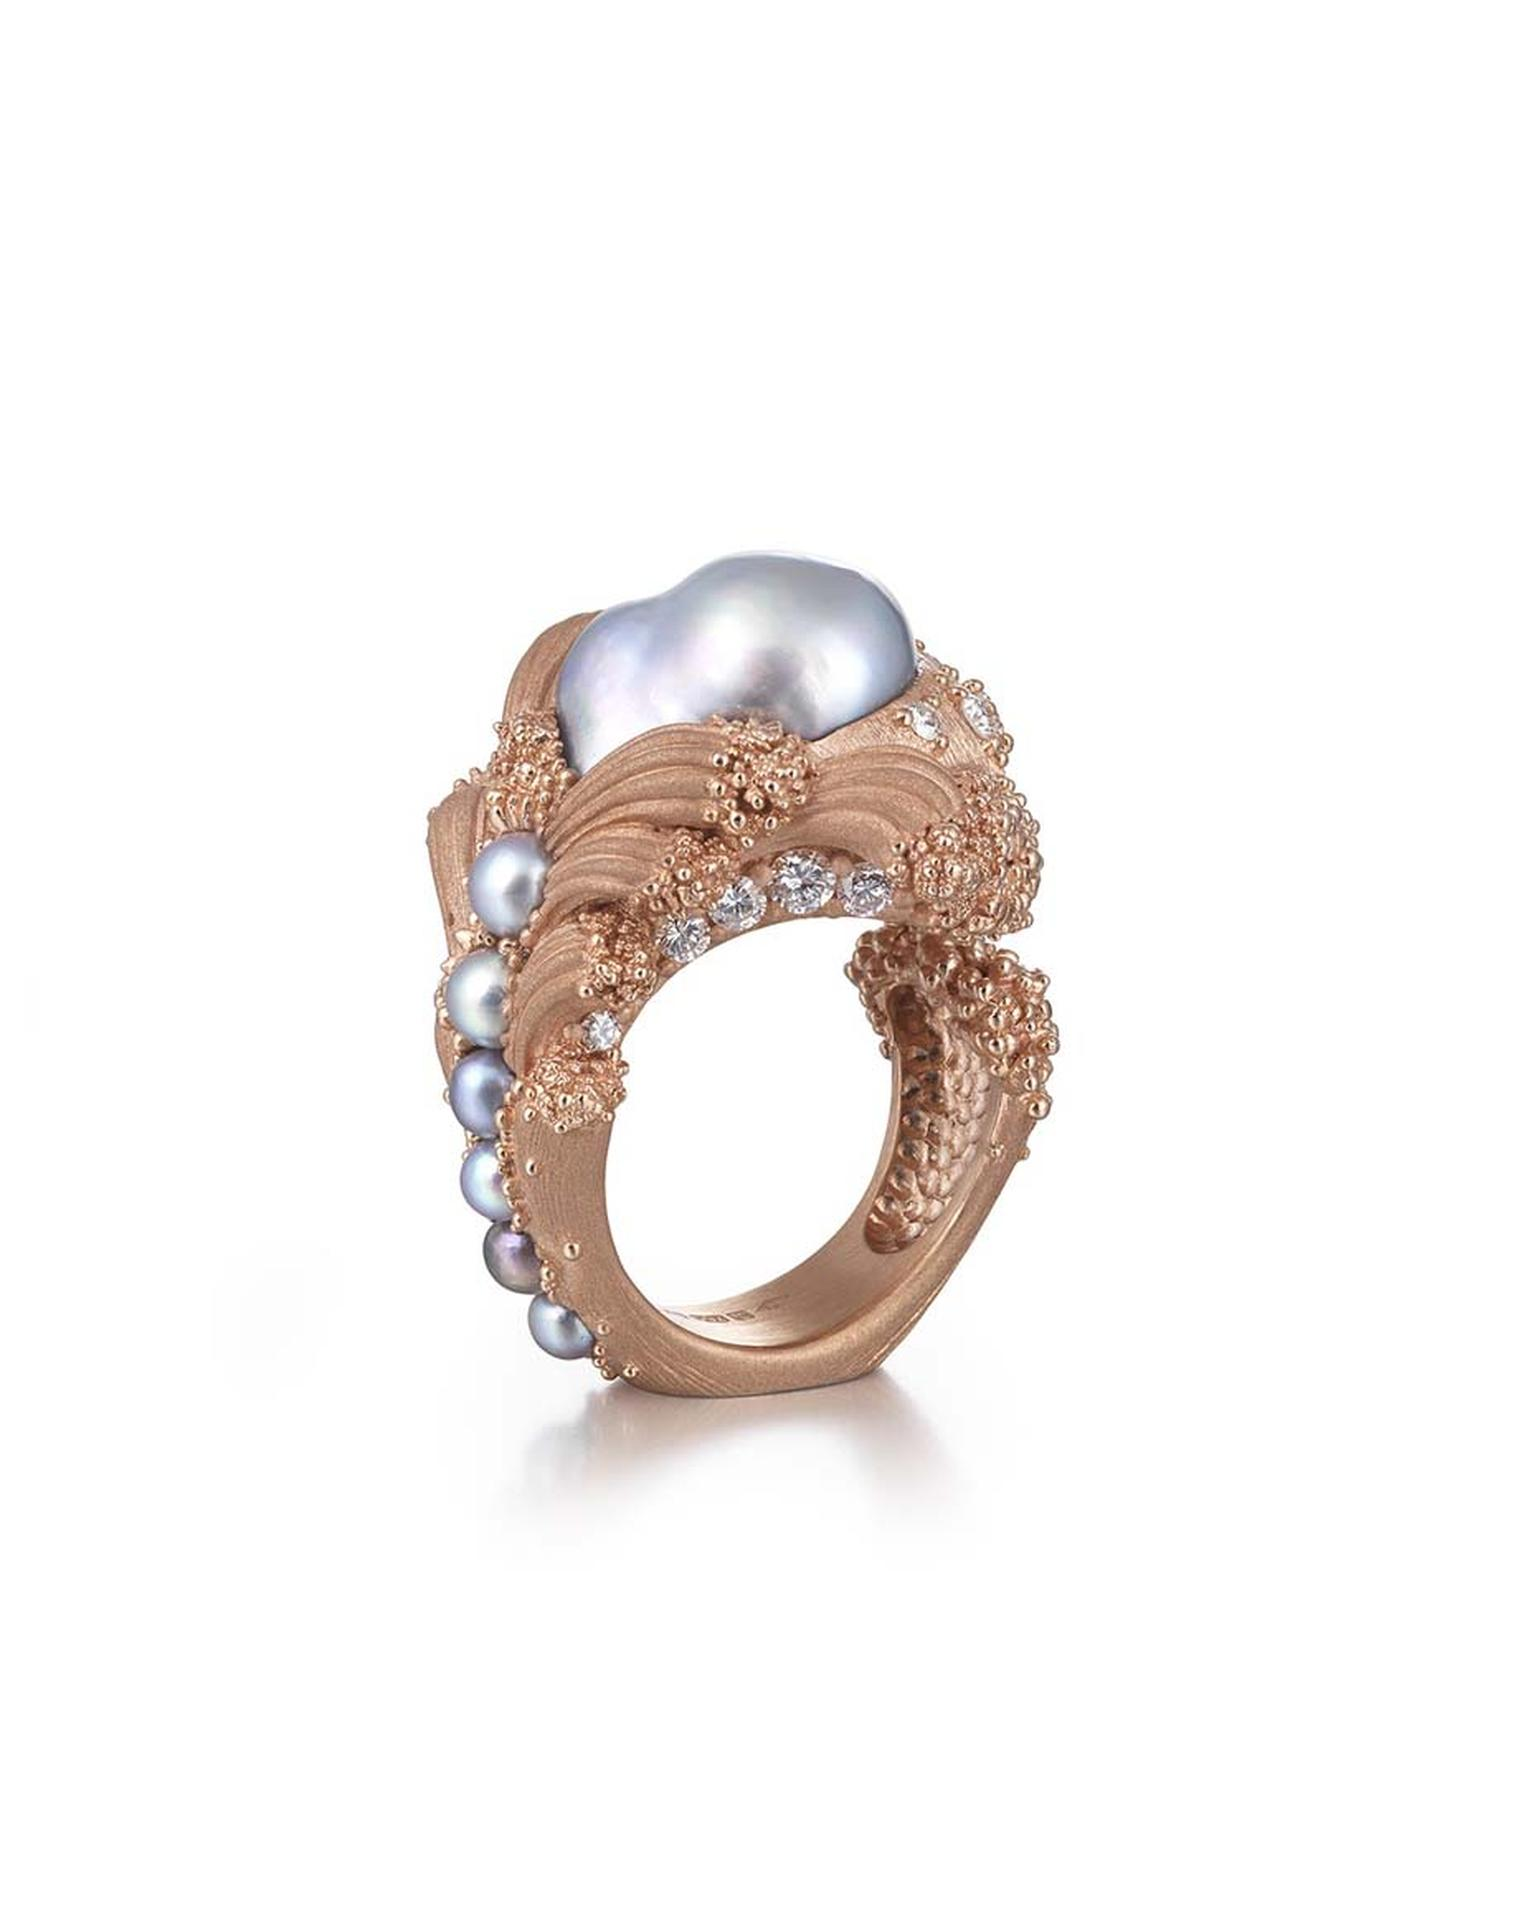 "Ornella Ianuzzi ""Uprising"" ring, currently on display at Goldsmith's Hall, was the winner of 2 Gold Awards at the recent Goldsmiths' Craft & Design Council Awards."